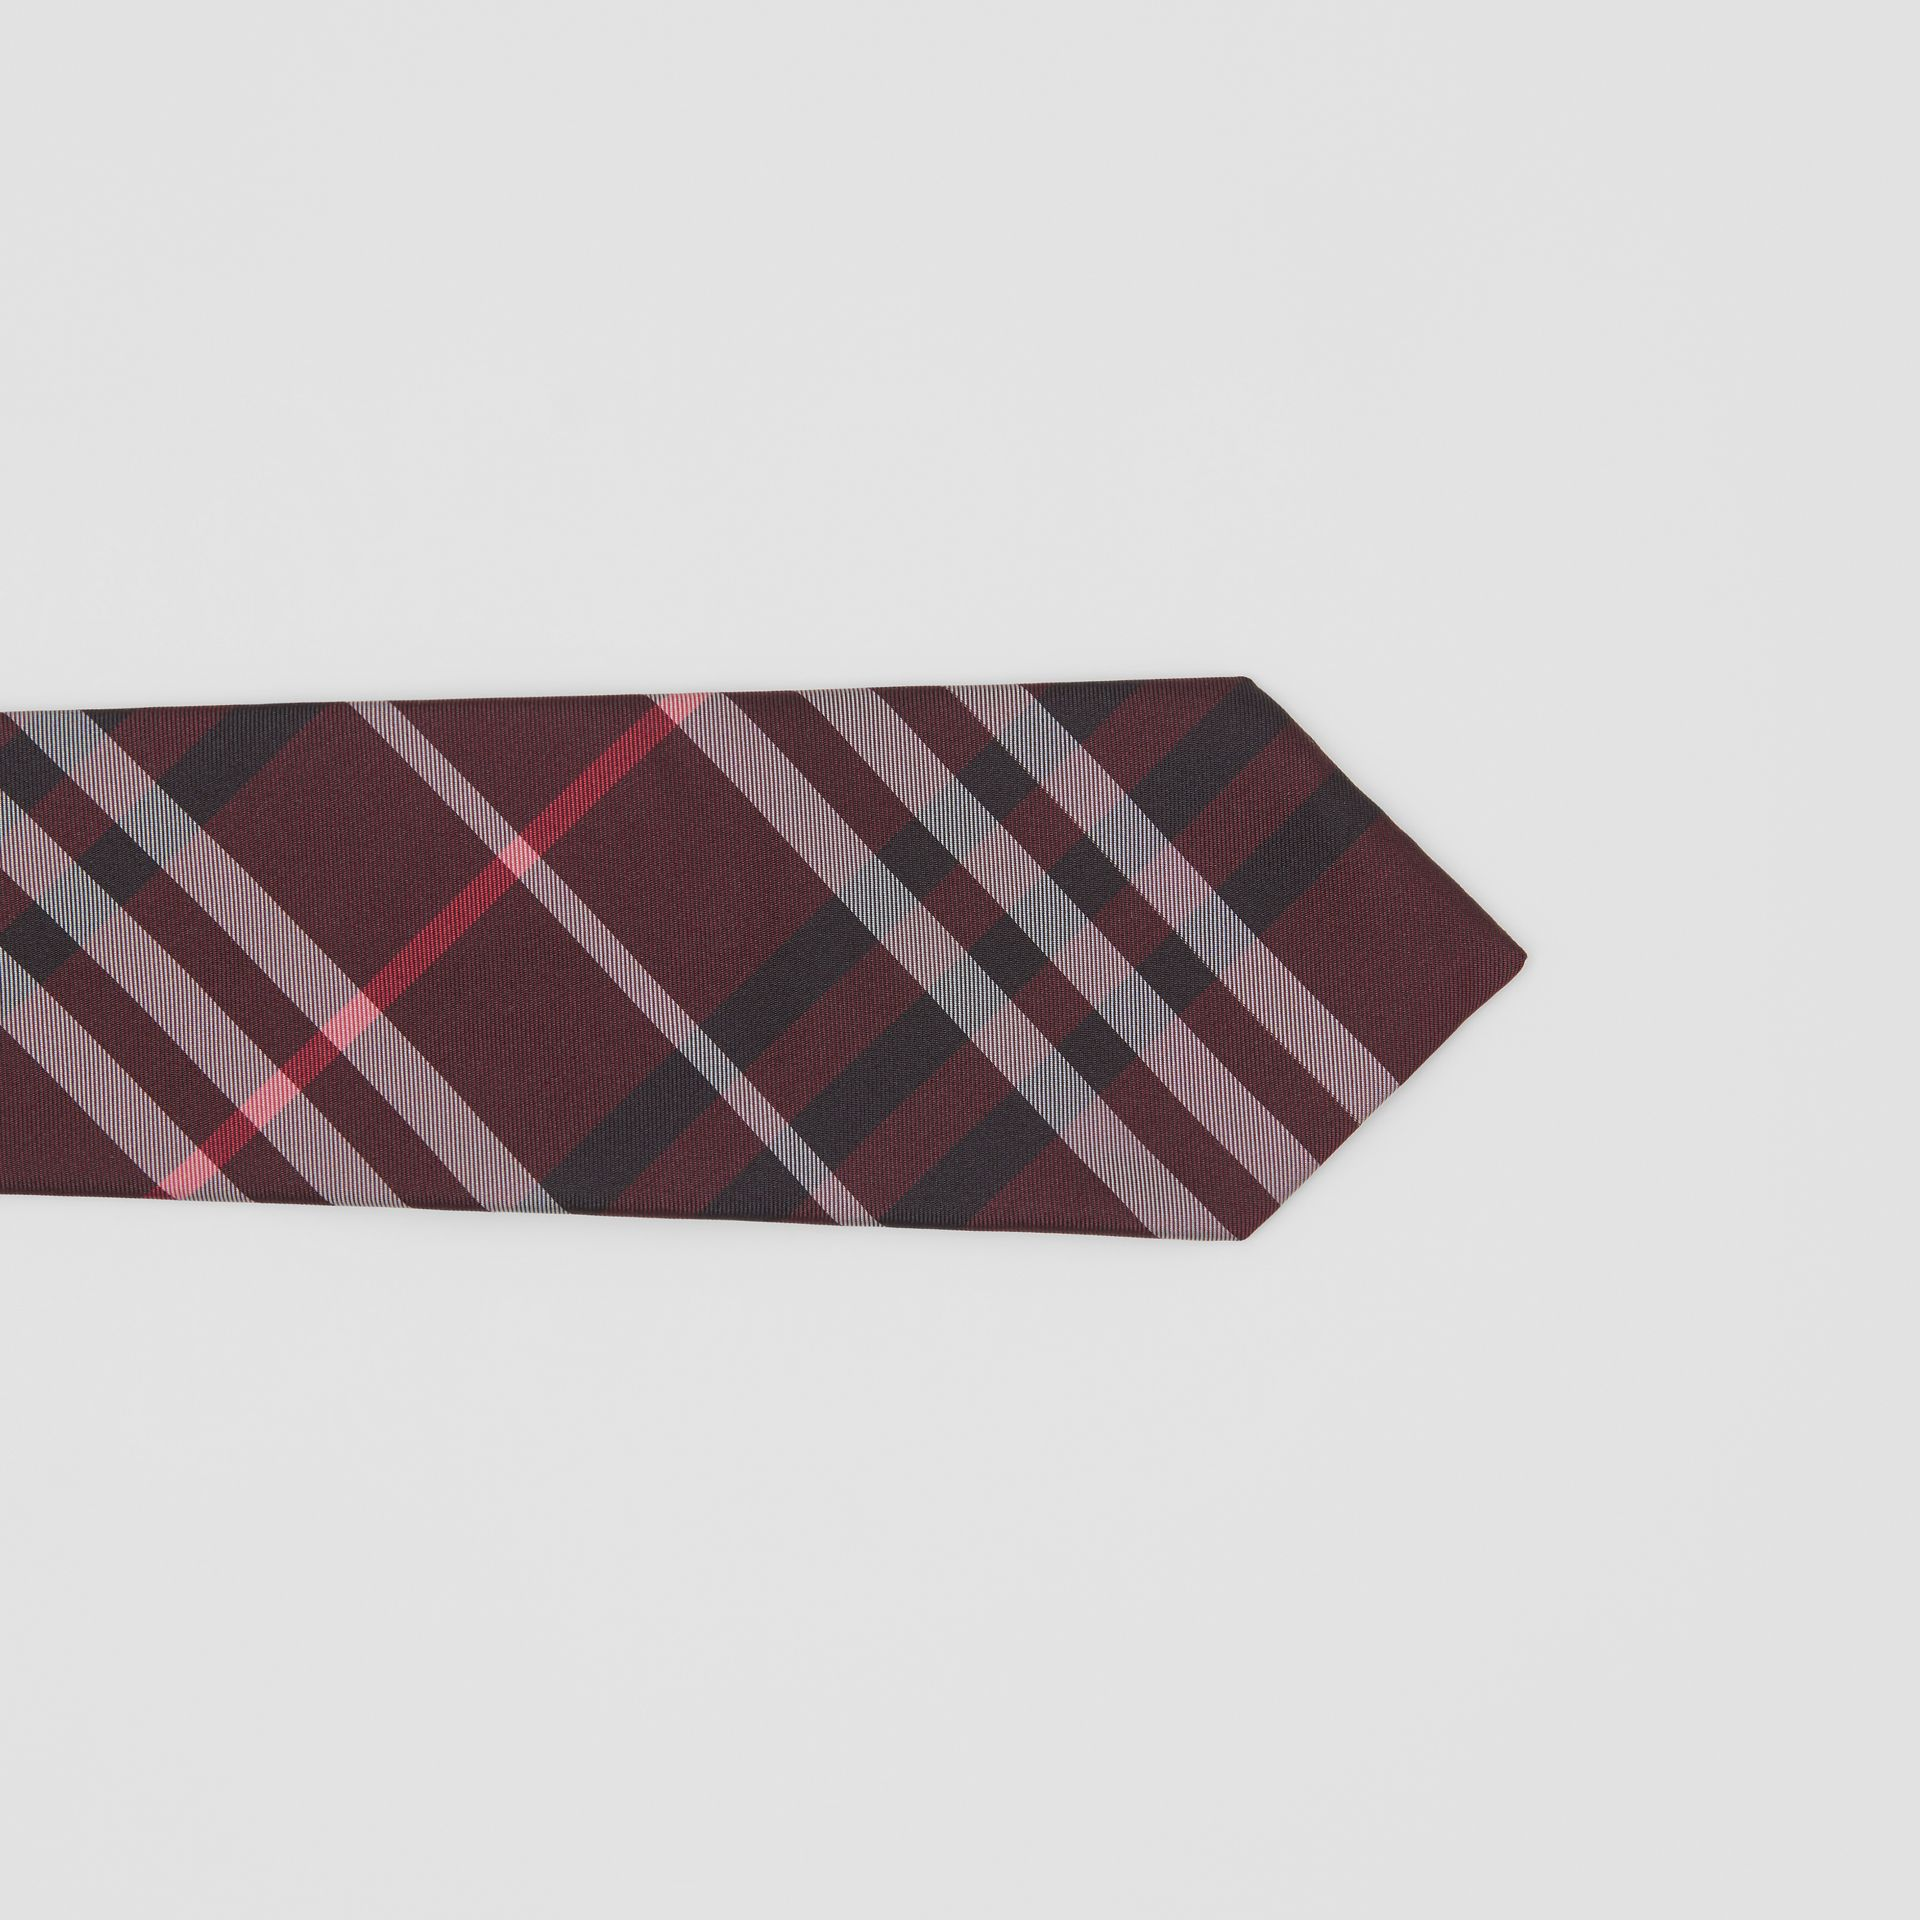 Classic Cut Vintage Check Silk Tie in Claret - Men | Burberry - gallery image 1